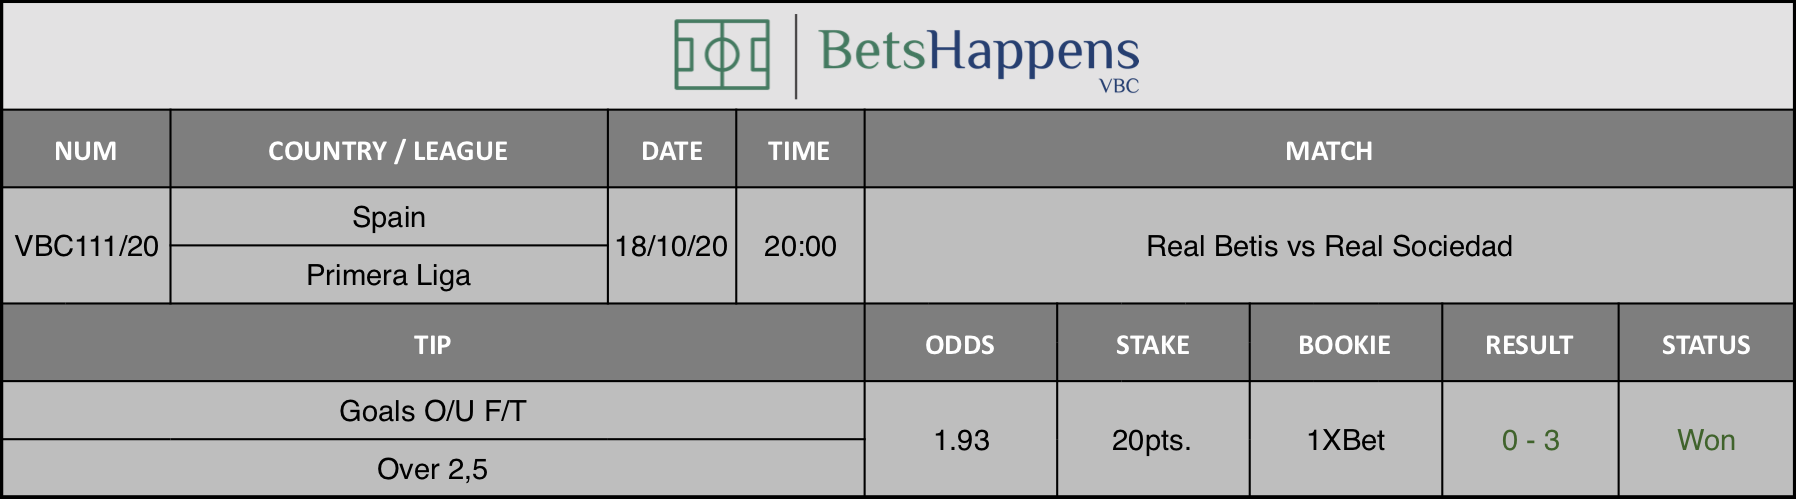 Results of our advice for the Real Betis vs Real Sociedad match in which Goals O / U F / T Over 2,5 is recommended.